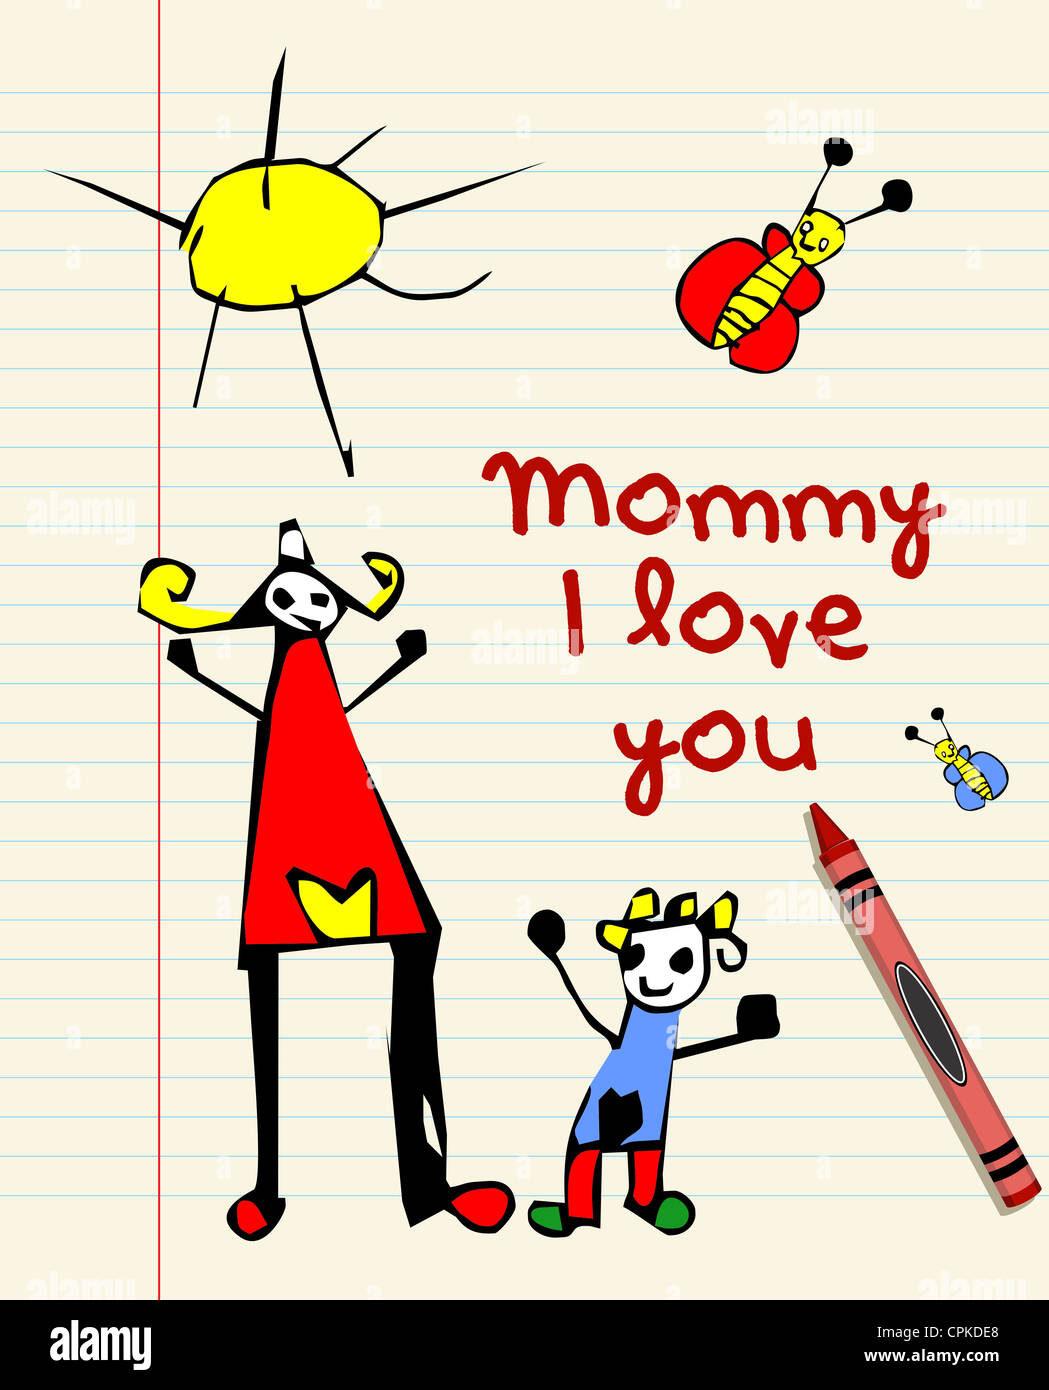 I love you mommy child drawing on striped sheet background. Vector file layered for easy manipulation and custom - Stock Image